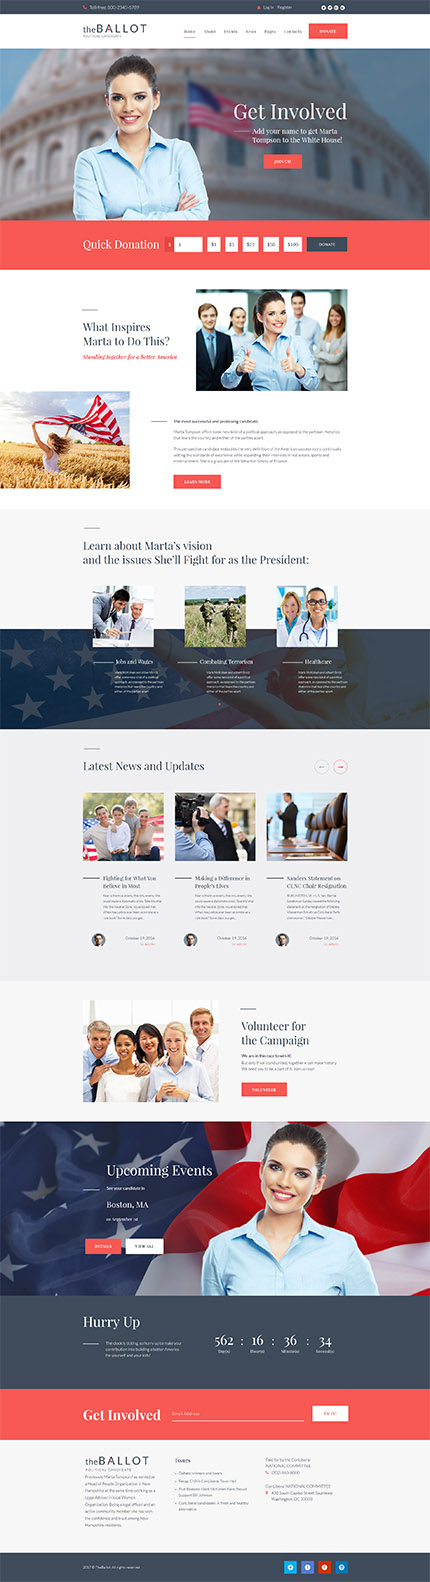 Politics Most Popular website inspirations at your coffee break? Browse for more WordPress #templates! // Regular price: $75 // Sources available:.PHP, This theme is widgetized #Politics #Most Popular #WordPress